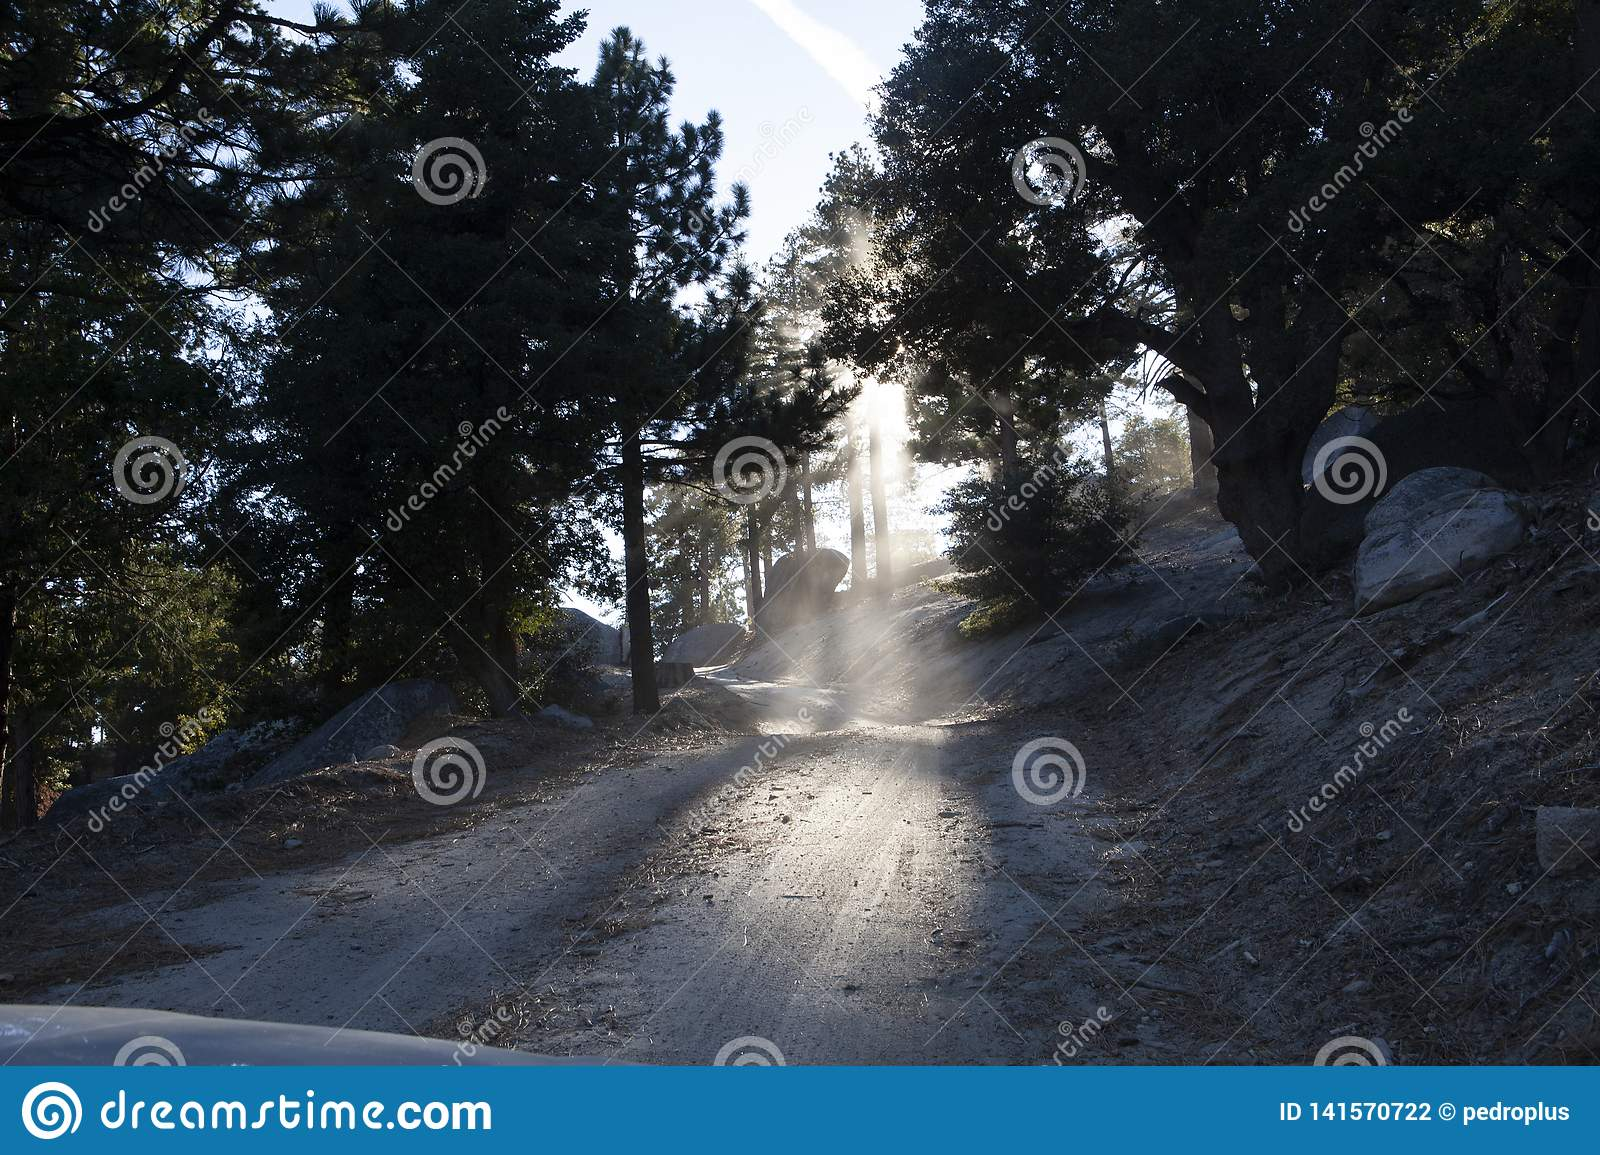 Driving on a sandy road